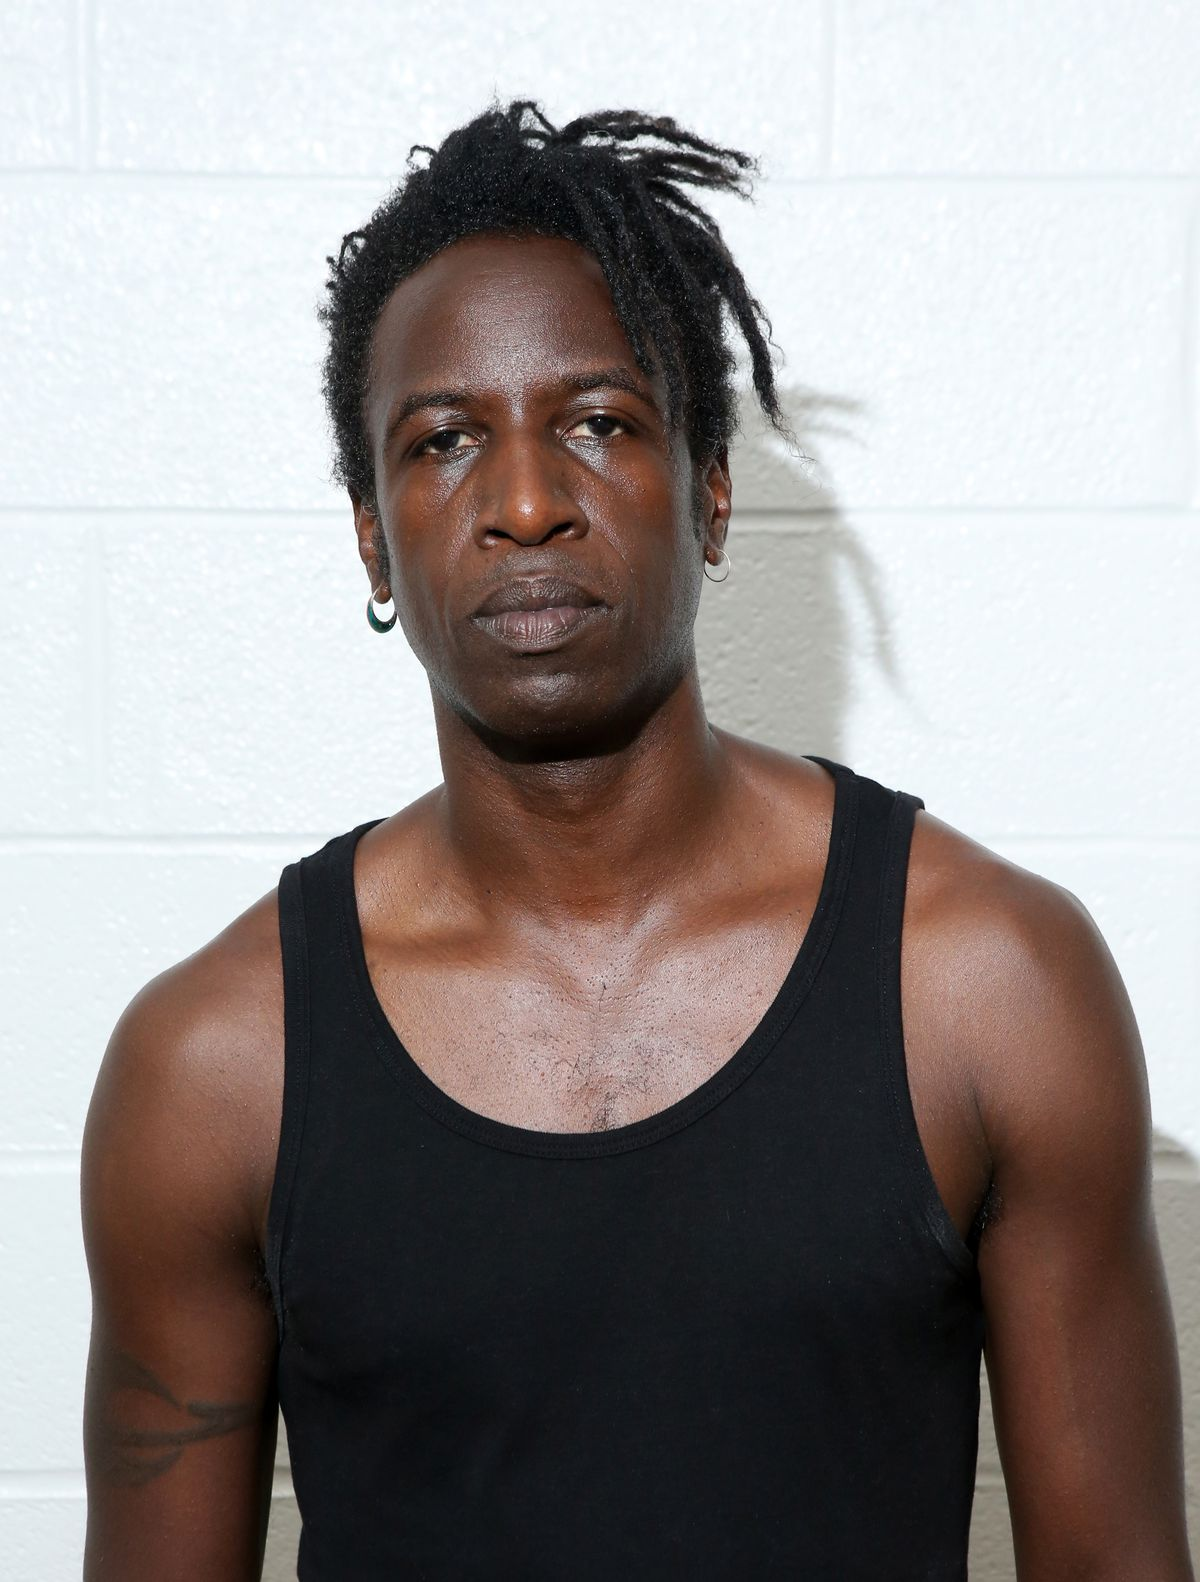 Actor and musician Saul Williams